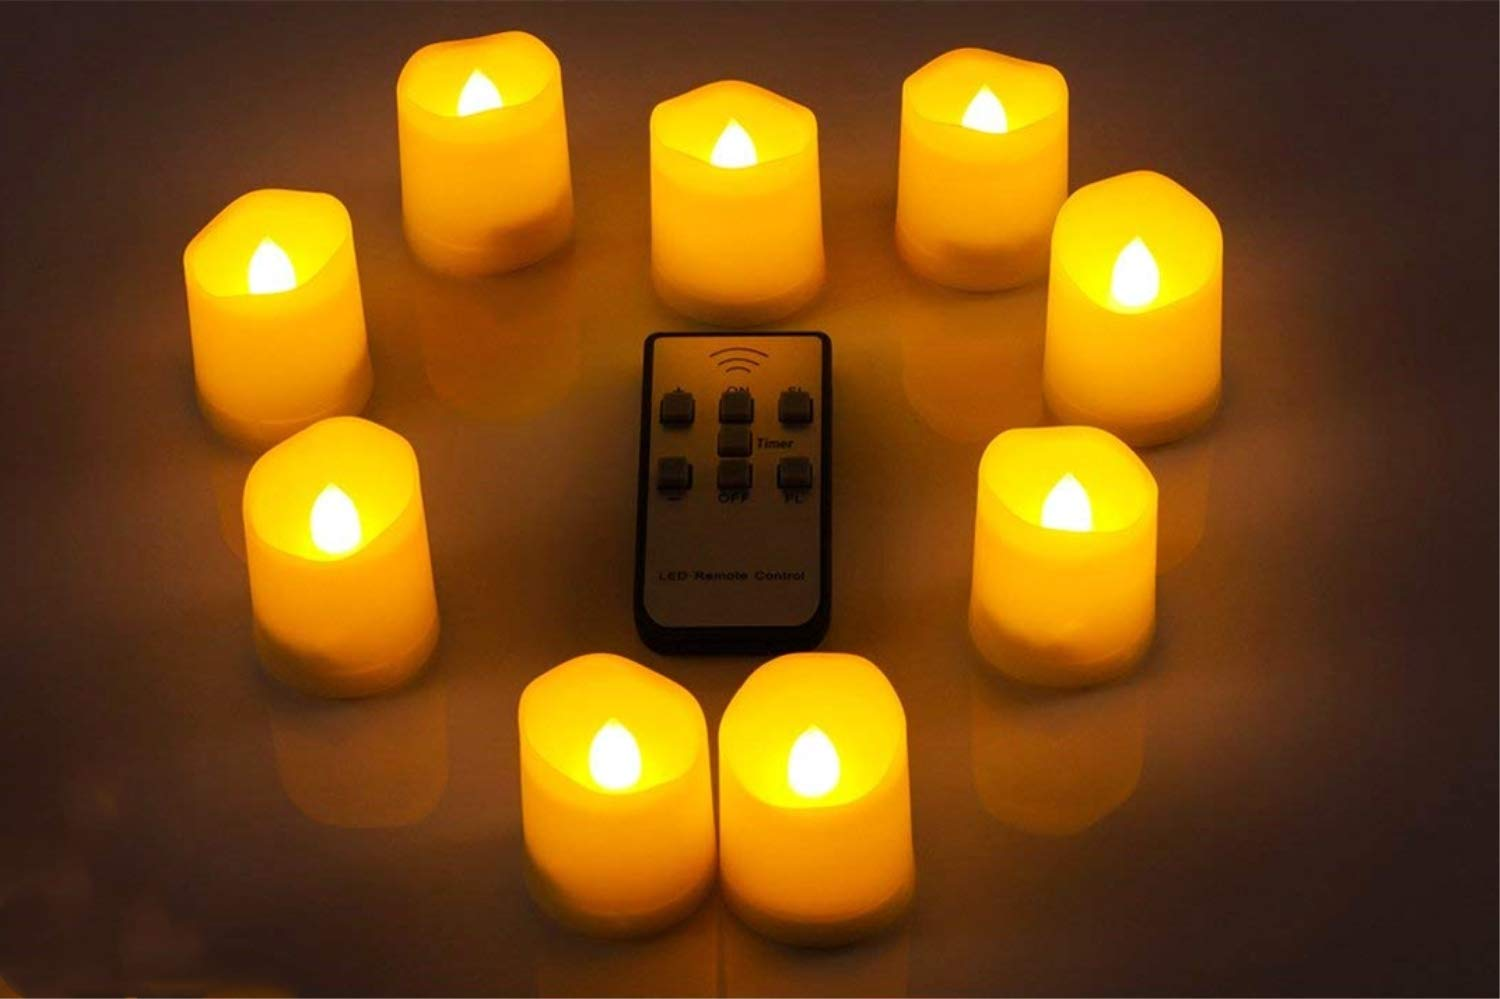 LED Electronic Remote Control Tea Wax, Candle Light, Artificial Candle Lamp, Night Light, Safe Smoke-Free and Pollution-Free, Decorate Gifts for Halloween Valentine's Day(24PCS) RAINBEAN